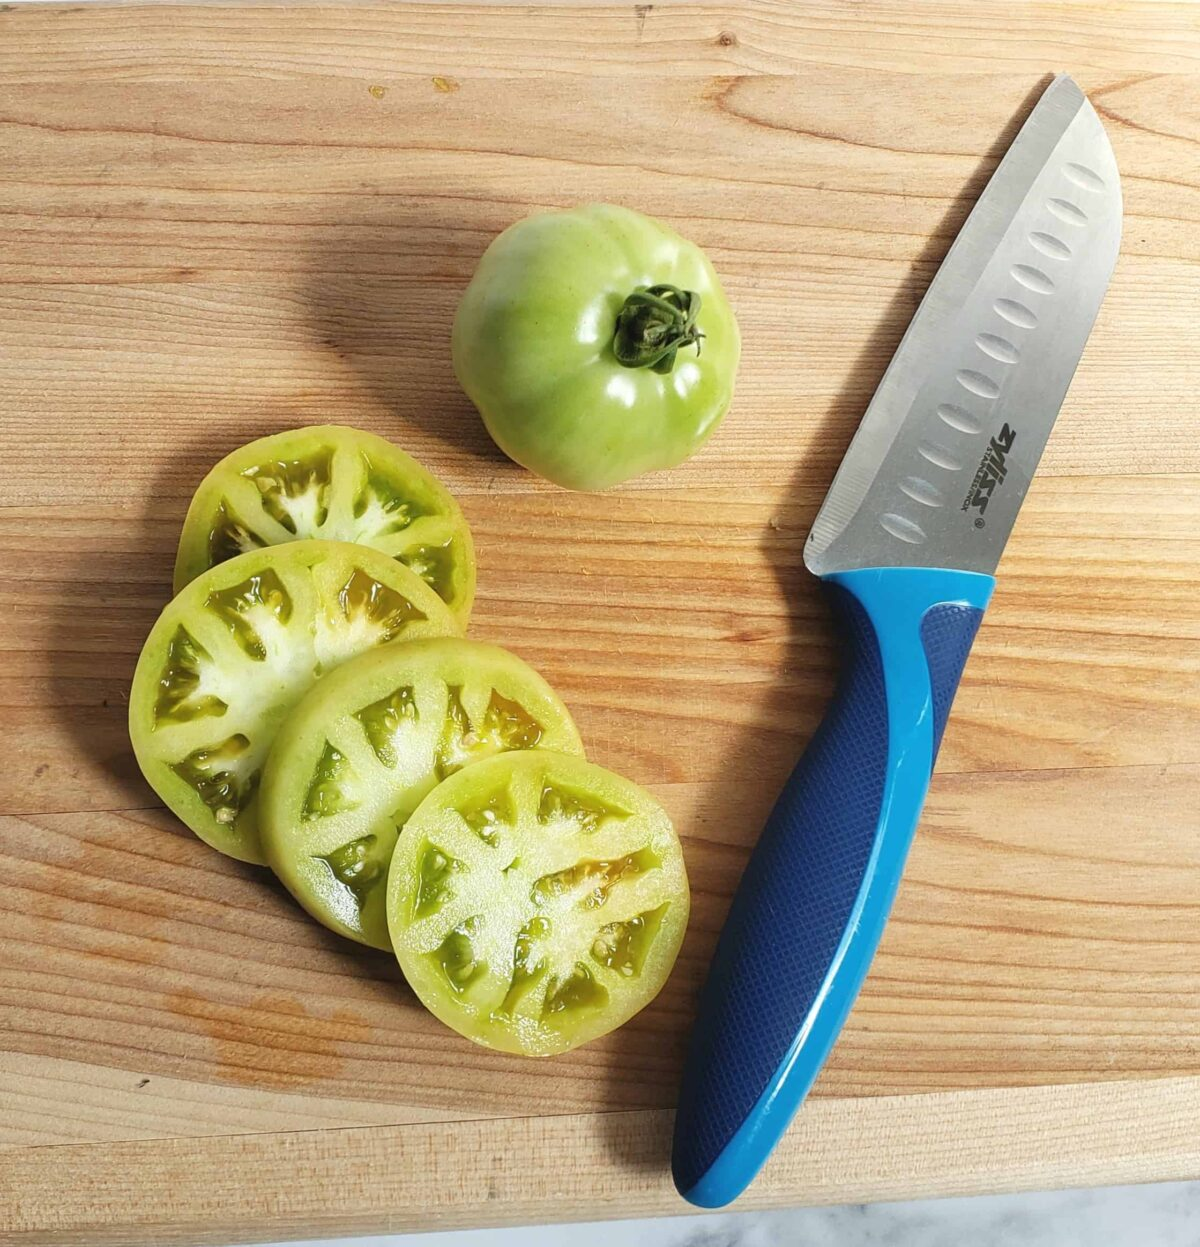 Sliced green tomatoes with knife on cutting board